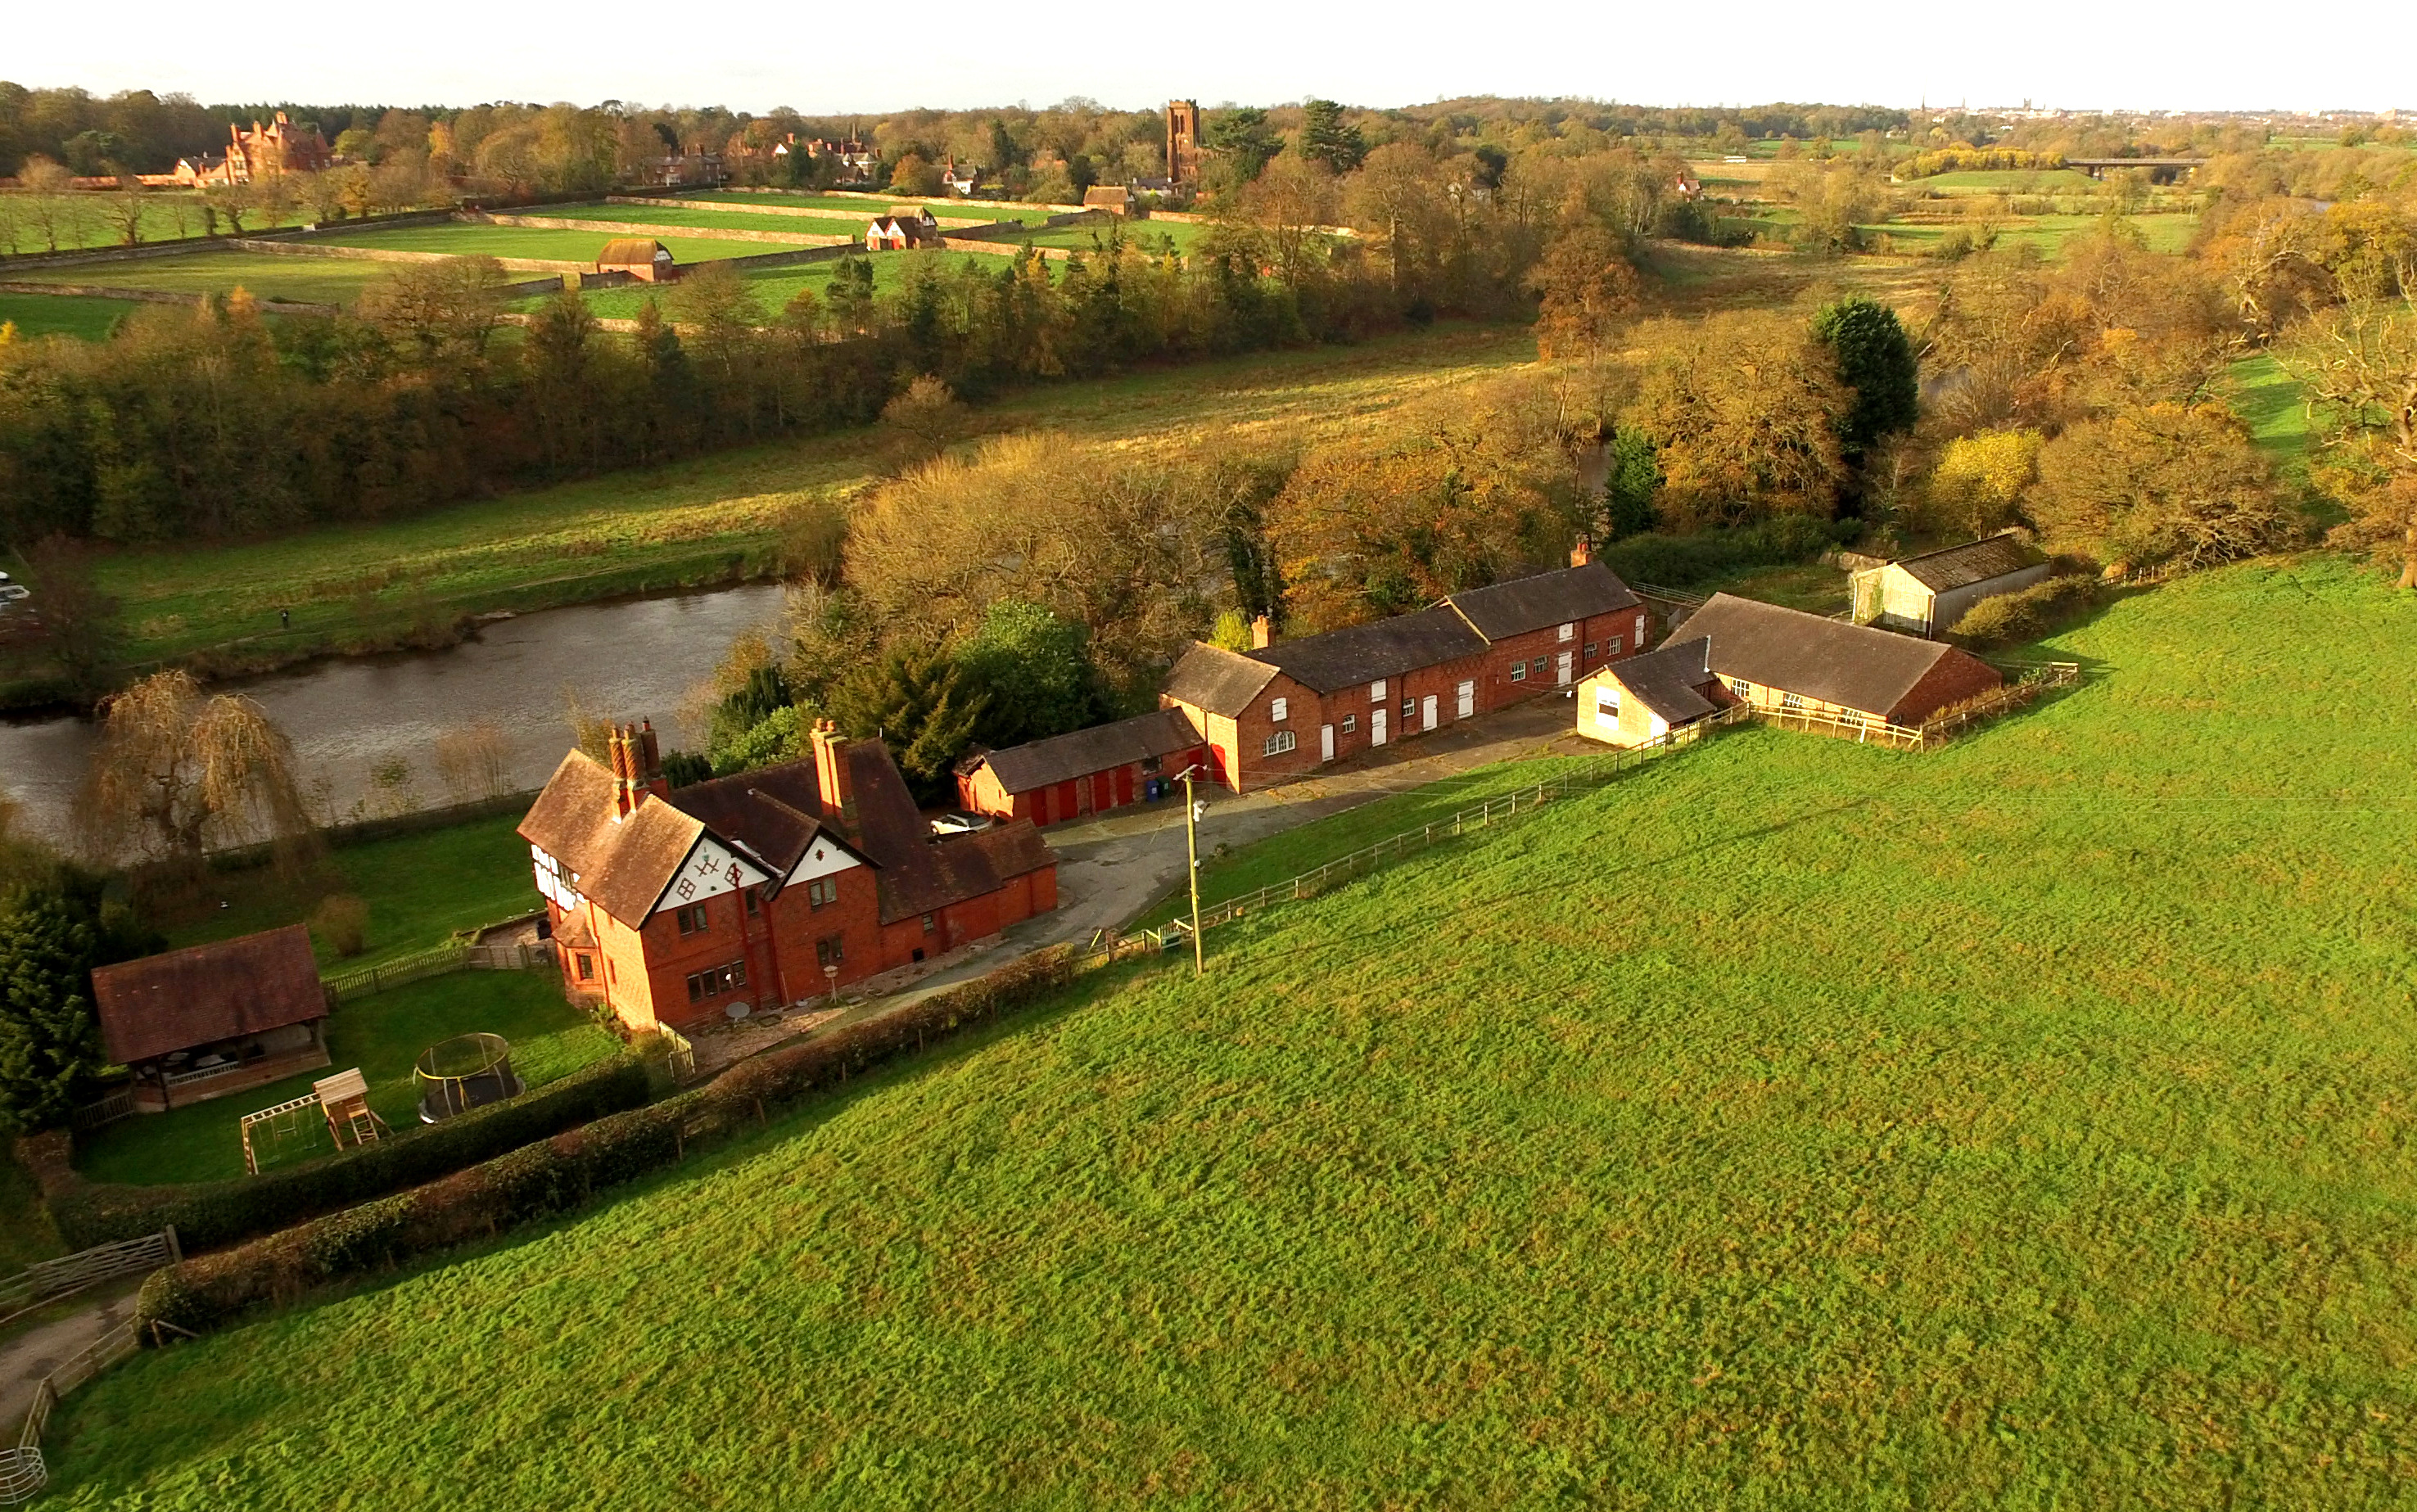 Drone-property-photograph-Chester.JPG#asset:477